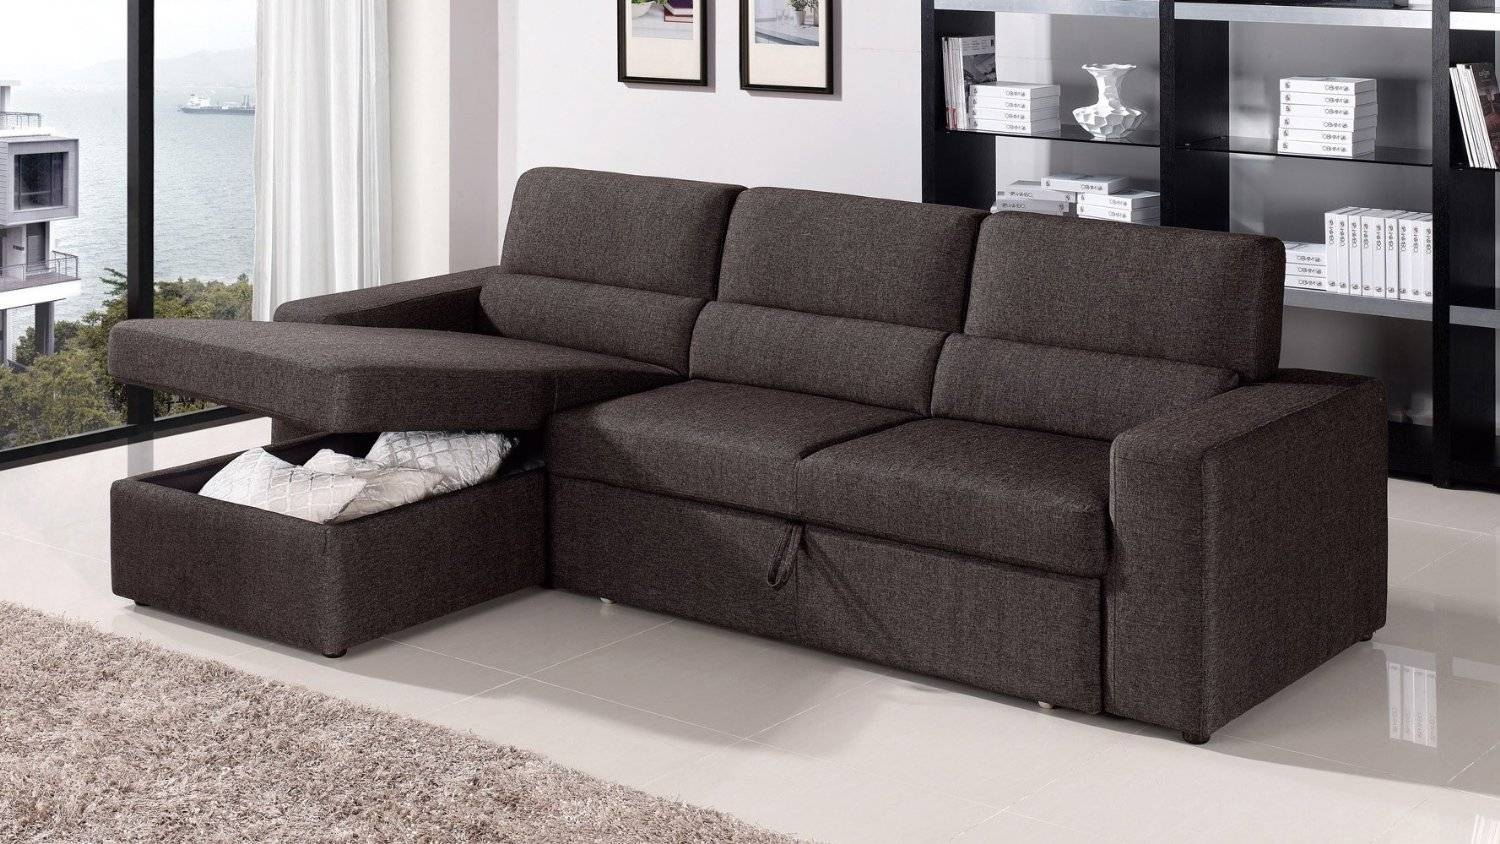 Awesome Sofas 2017 popular cool sleeper sofas